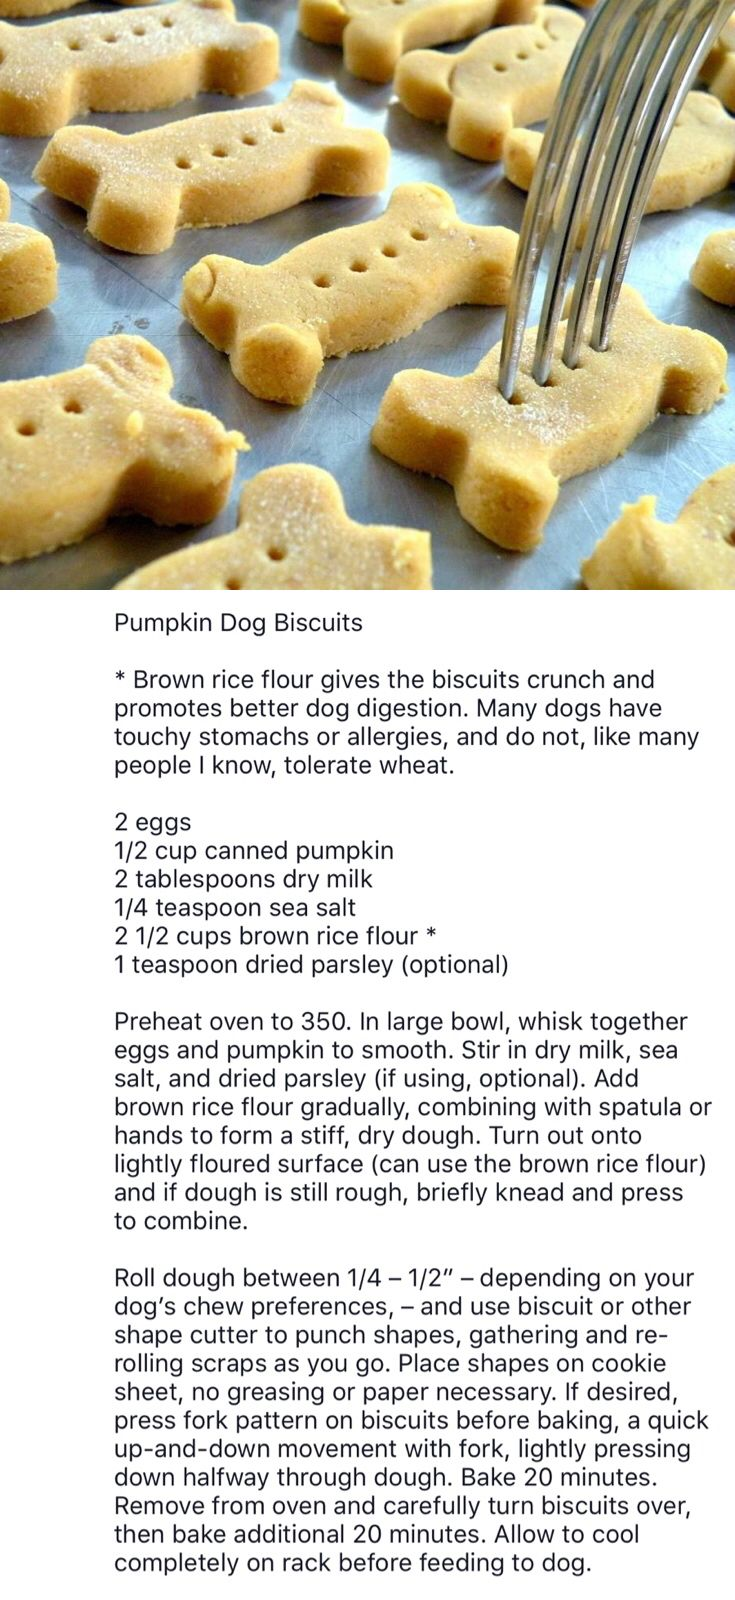 Diy Pumpkin Dog Biscuits With Brown Rice Flour For Ease In